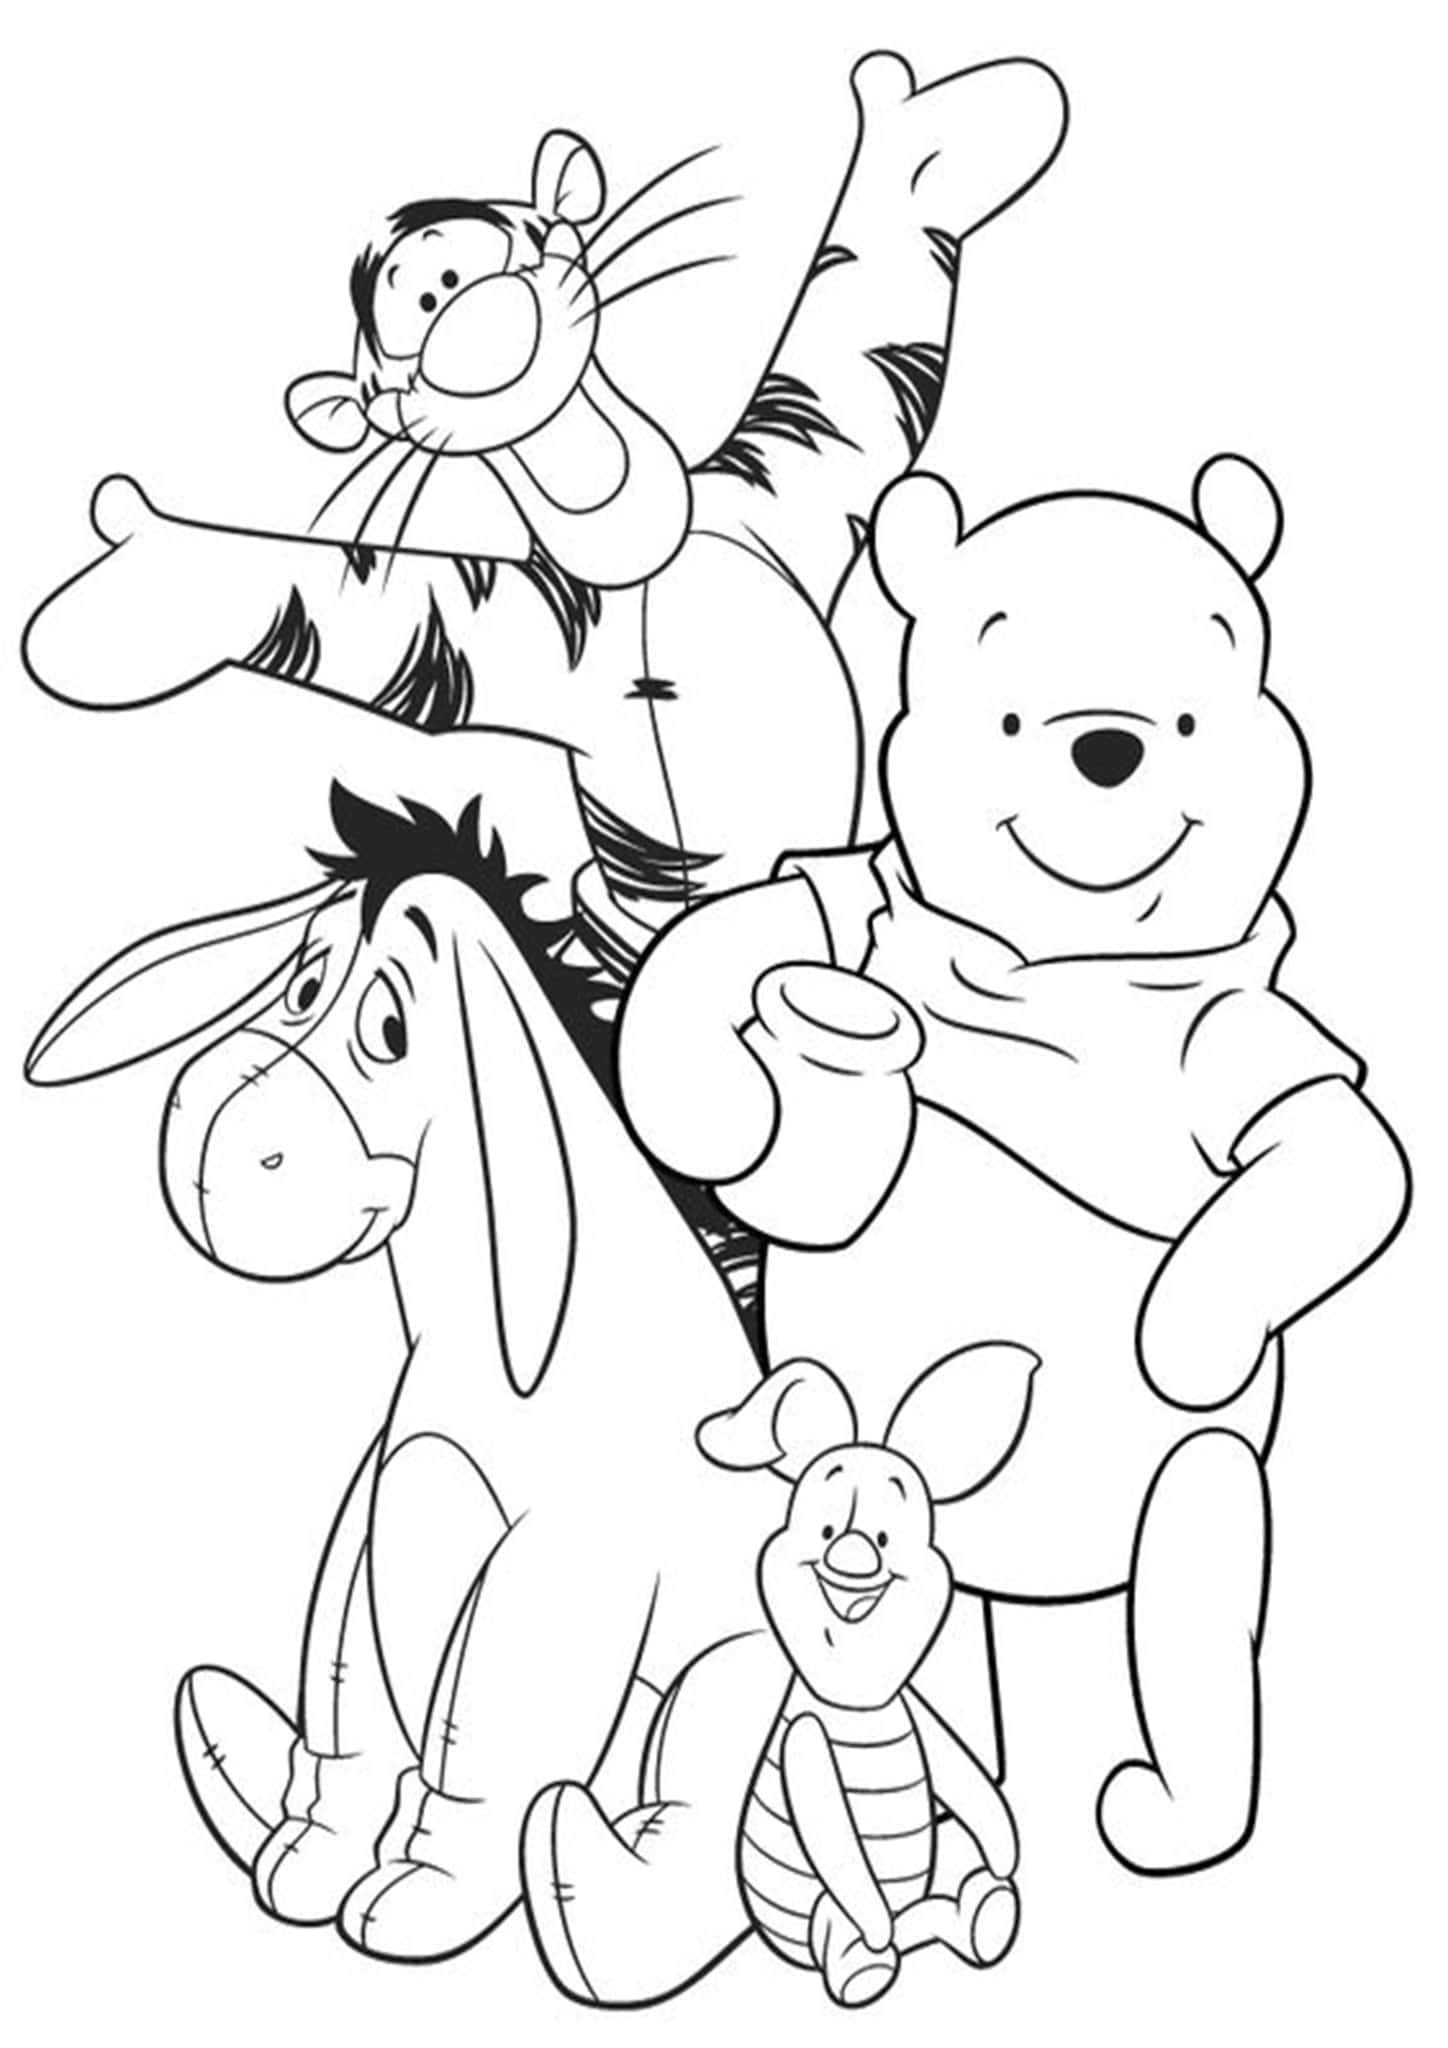 winnie the pooh pictures to color free printable winnie the pooh coloring pages for kids to the pooh pictures color winnie